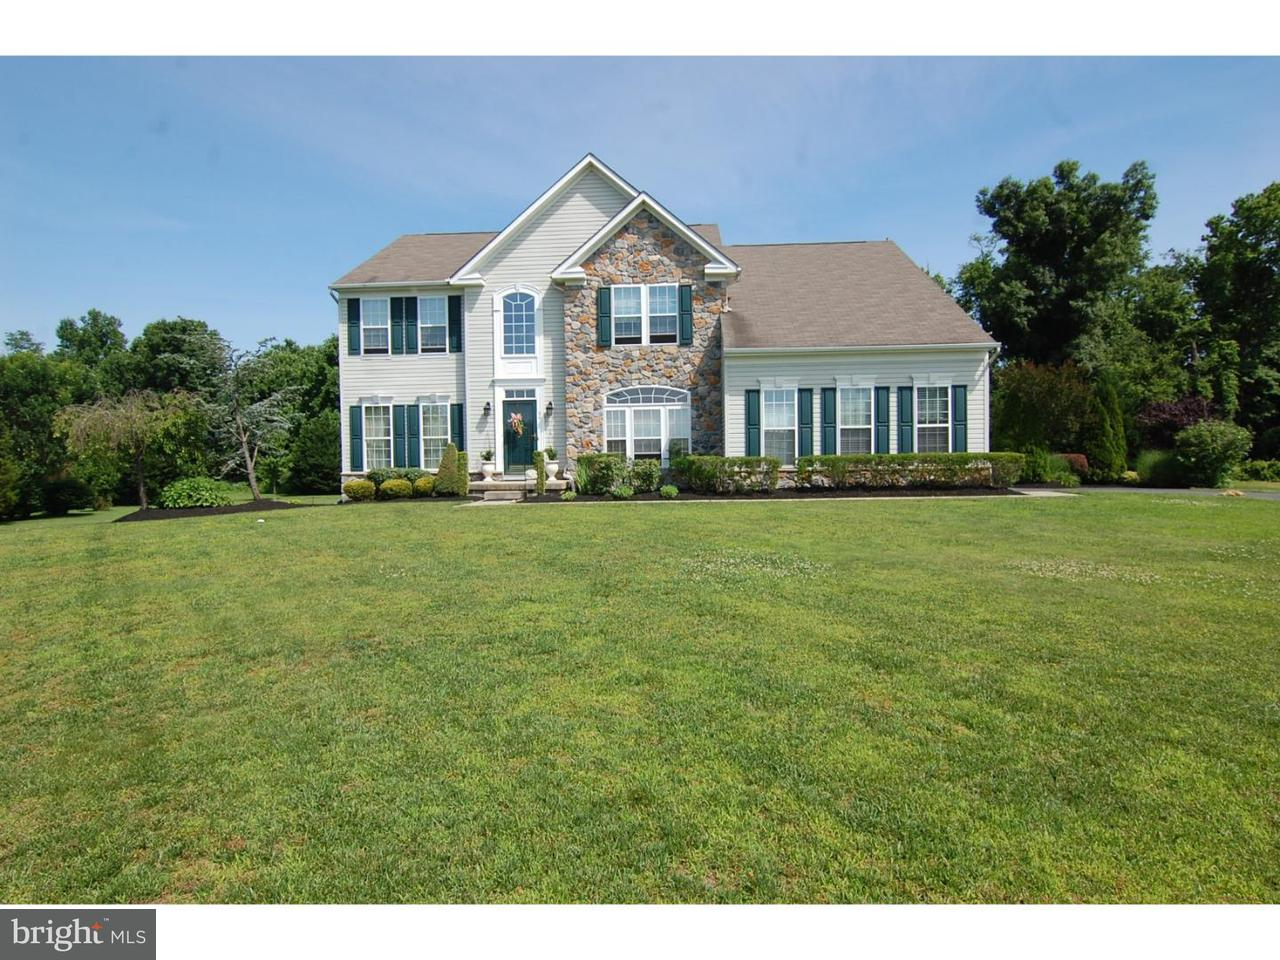 Single Family Home for Sale at 94 QUAIL RIDGE WAY Mickleton, New Jersey 08056 United States